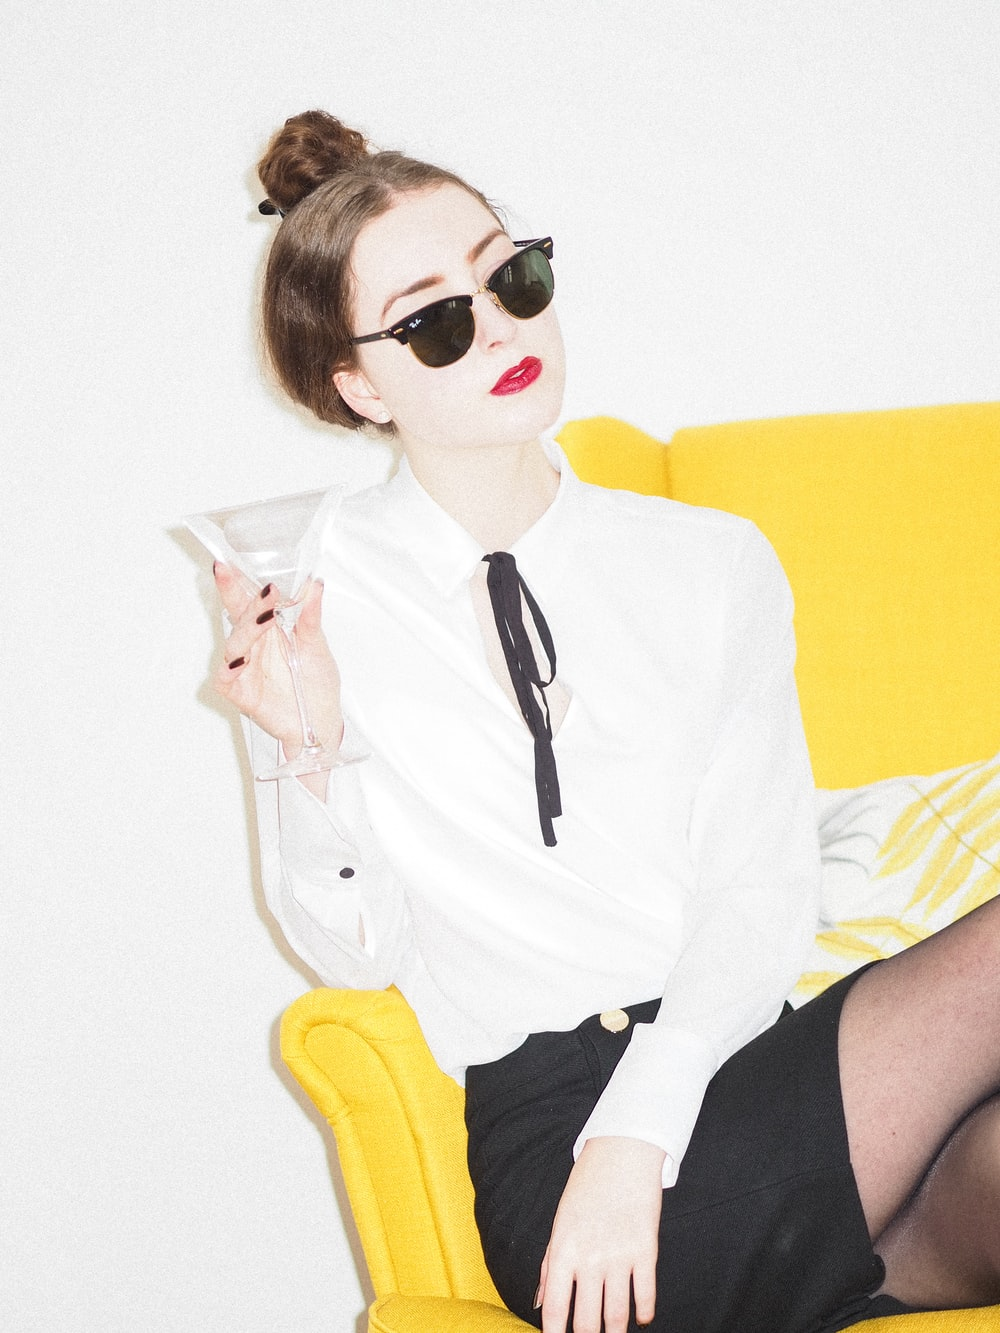 woman in white dress shirt and black skirt sitting on yellow couch